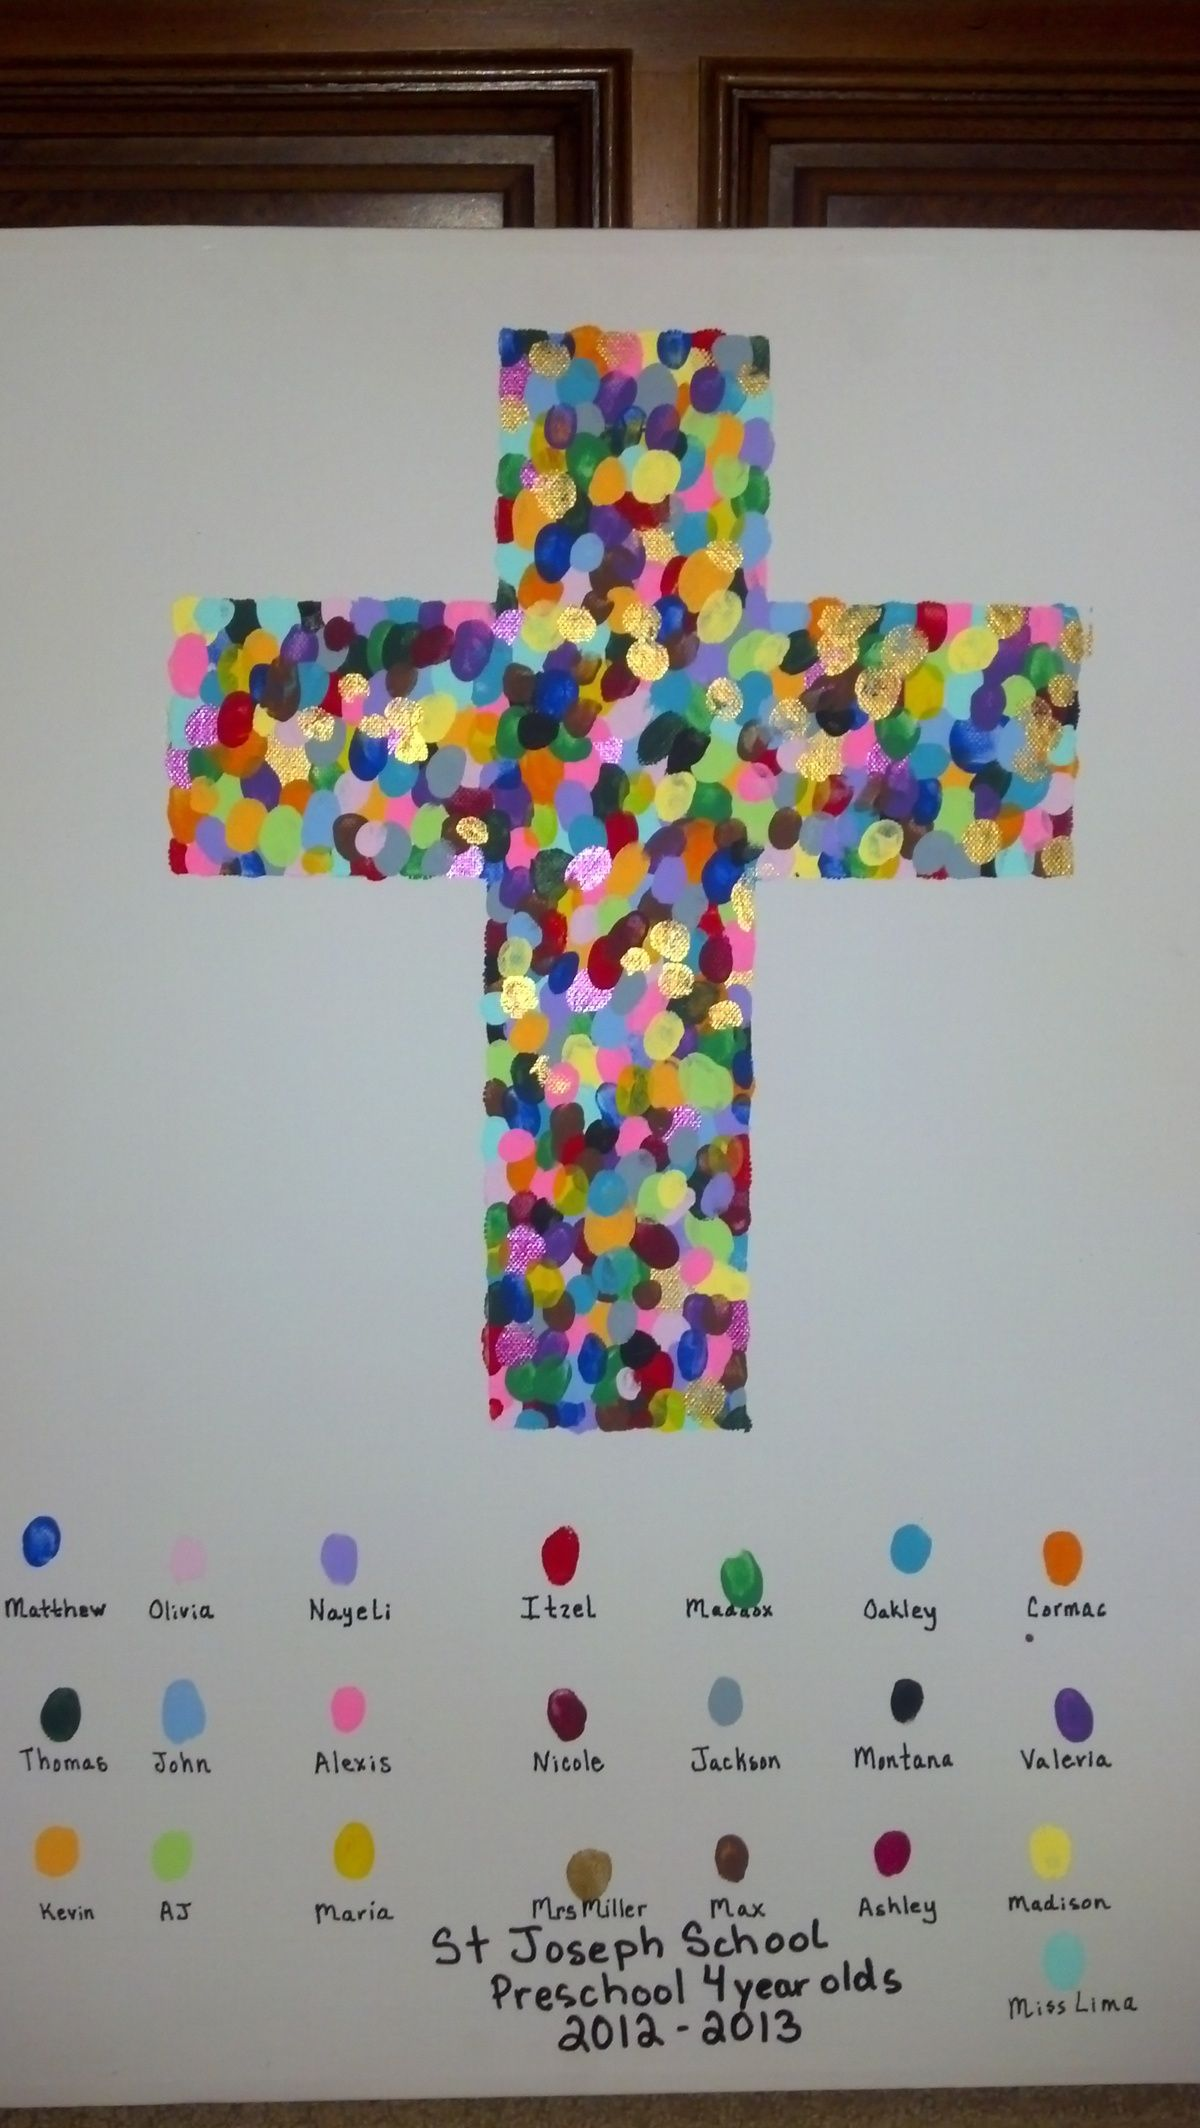 20 Great Ideas for School Auction Art Projects | Class art ...